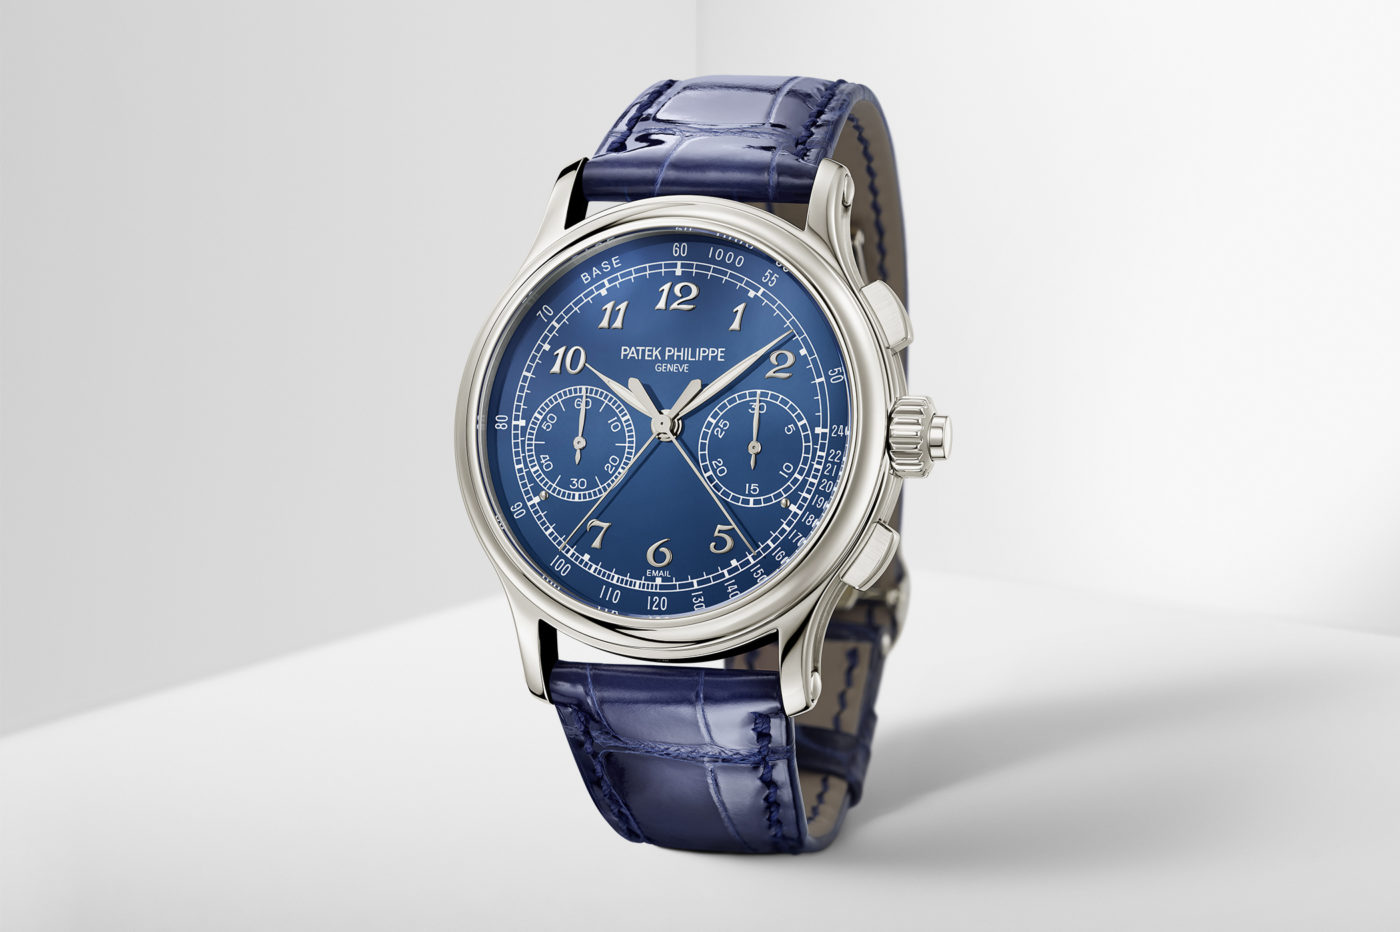 Patek Philippe Ref. 5370P Split-Seconds Chronograph